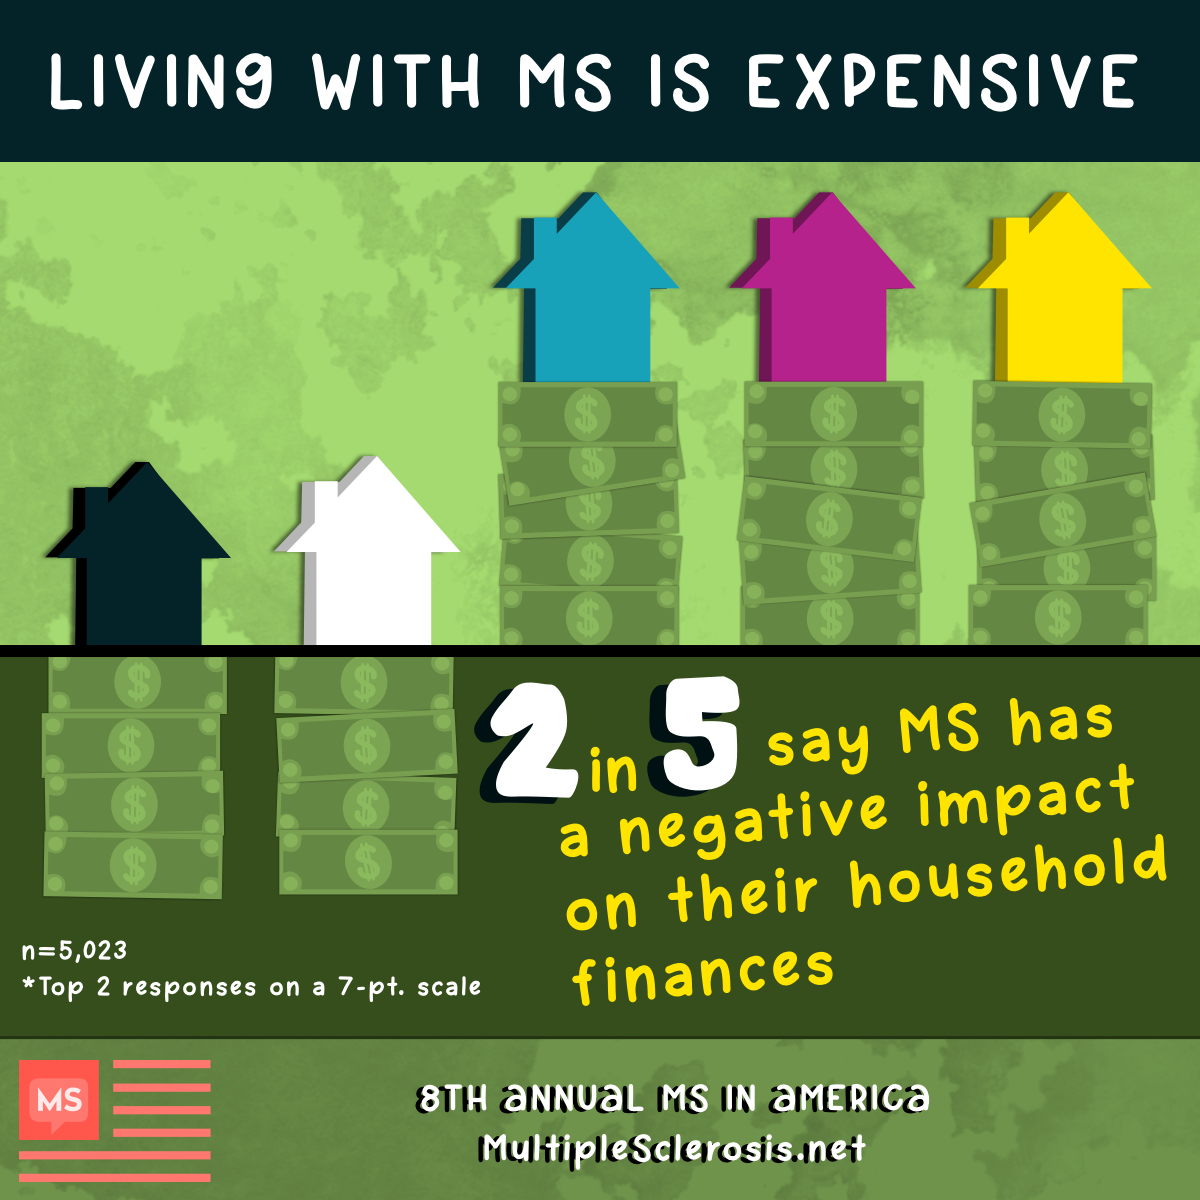 2 in 5 say MS has a negative impact on their household finances.